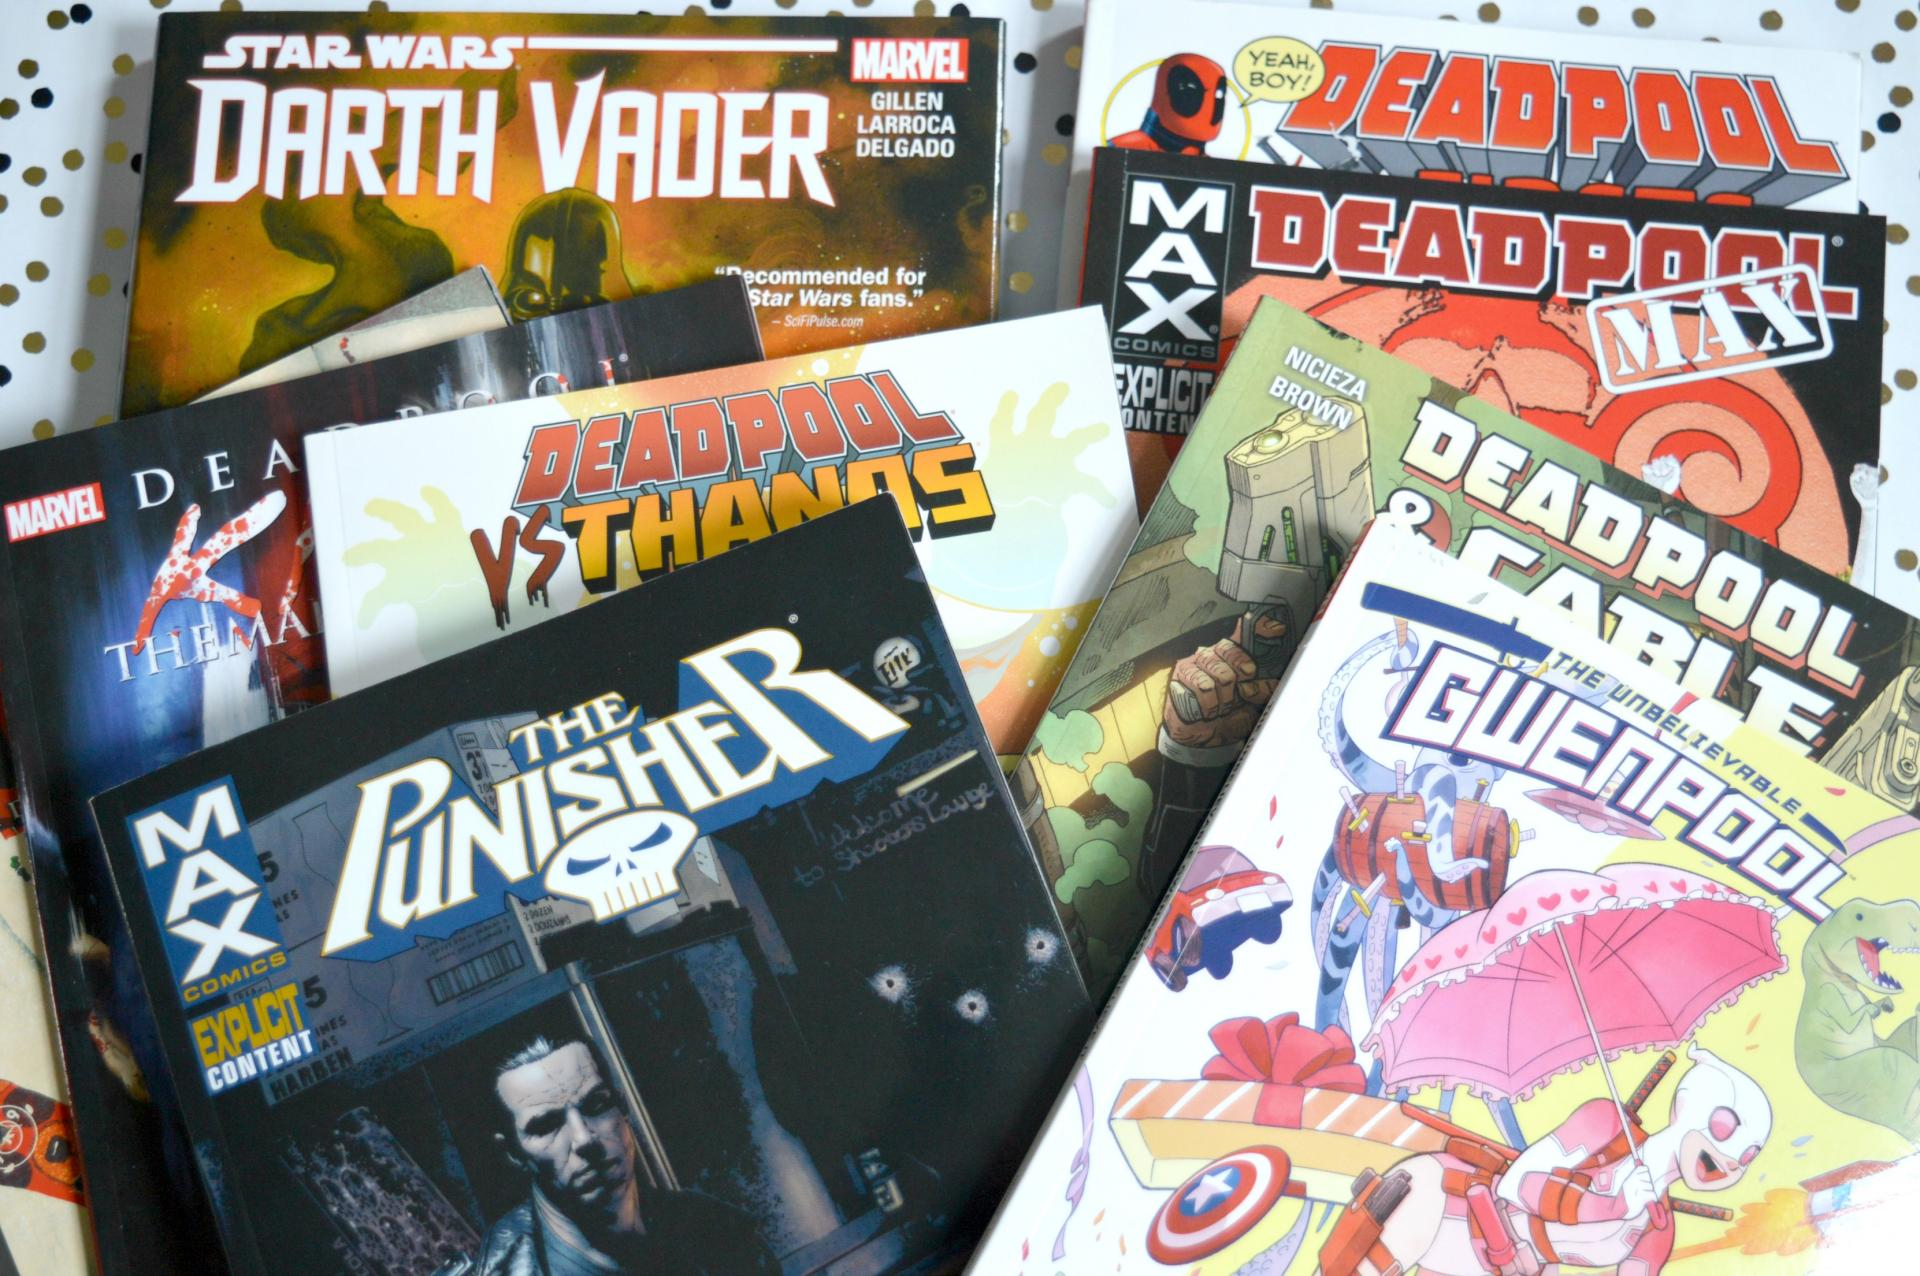 How To Get Your Hands On Affordable Comics In The UK - Deadpool, The Punisher, Gwenpool, Darth Vader and More